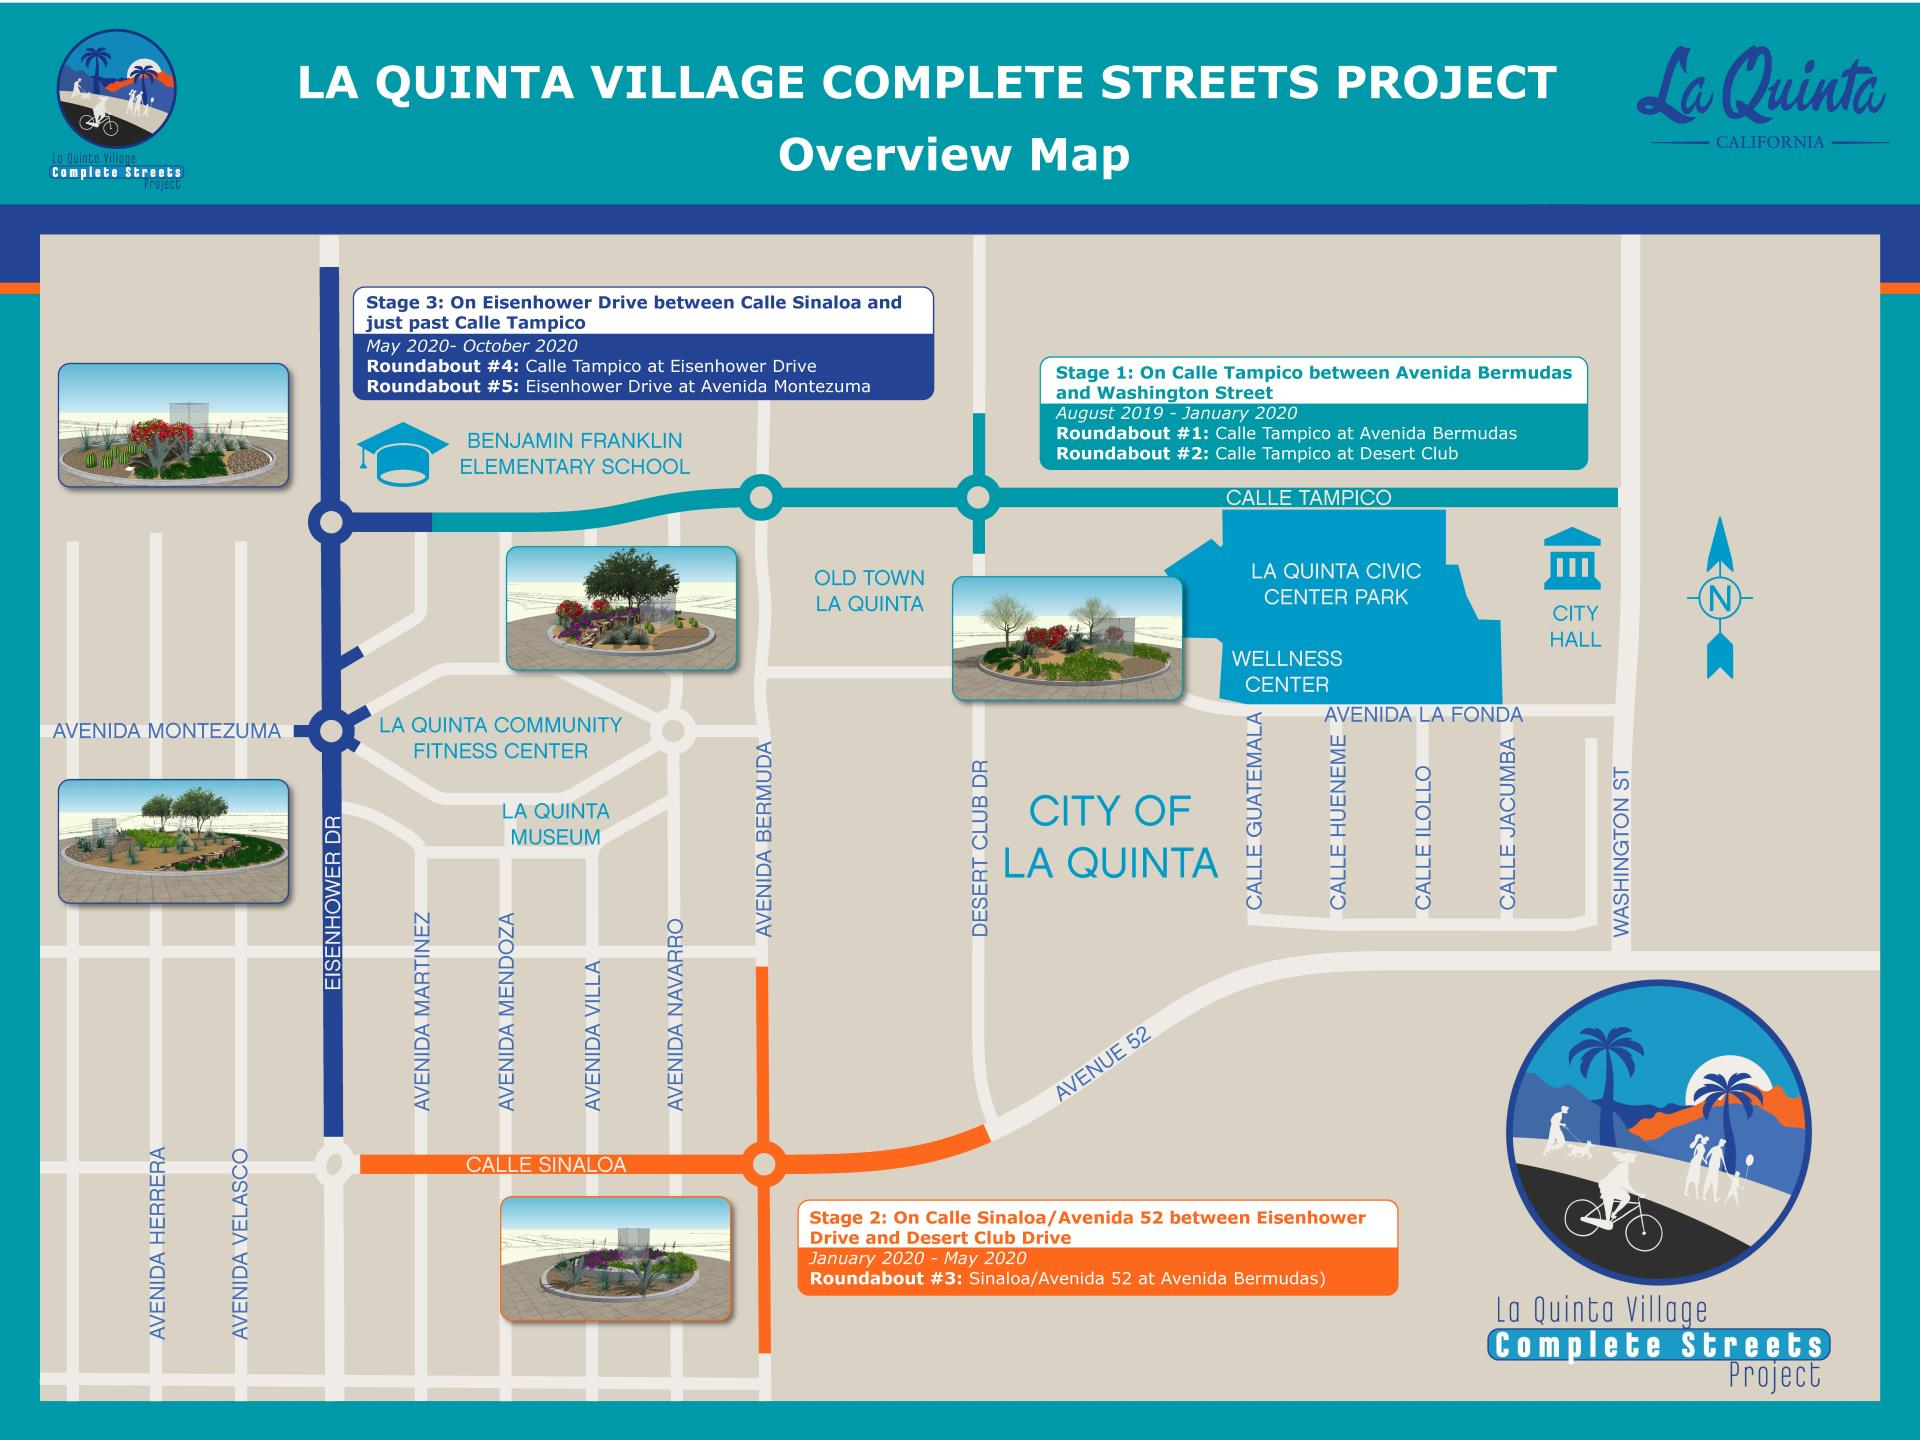 Complete Streets Project Overview Map